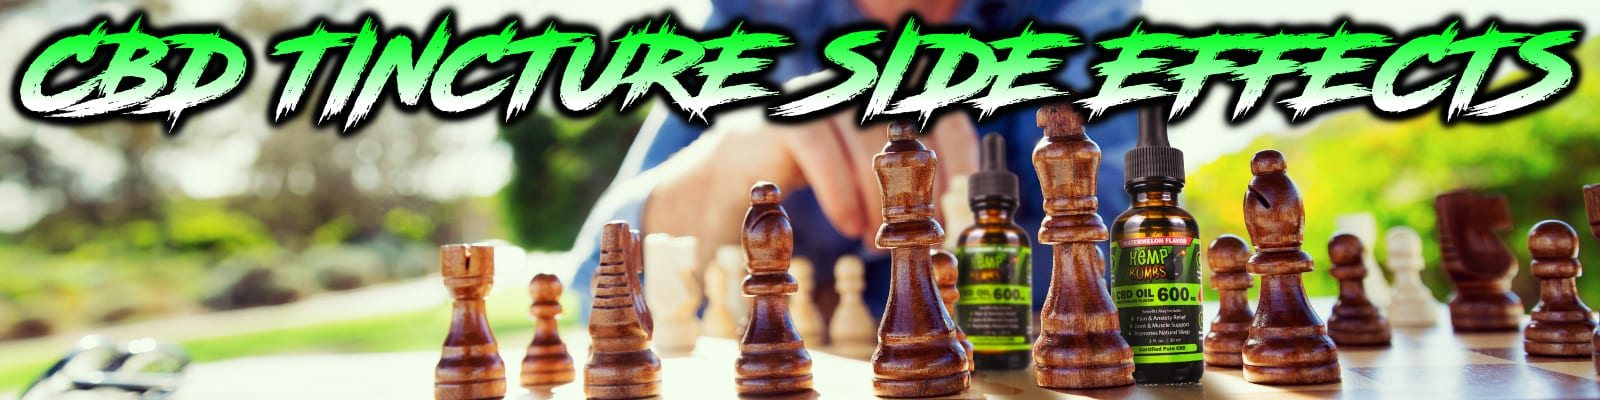 CBD Tincture Side Effects with a chess board and two bottles of 600mg Hemp Bombs CBD Oil